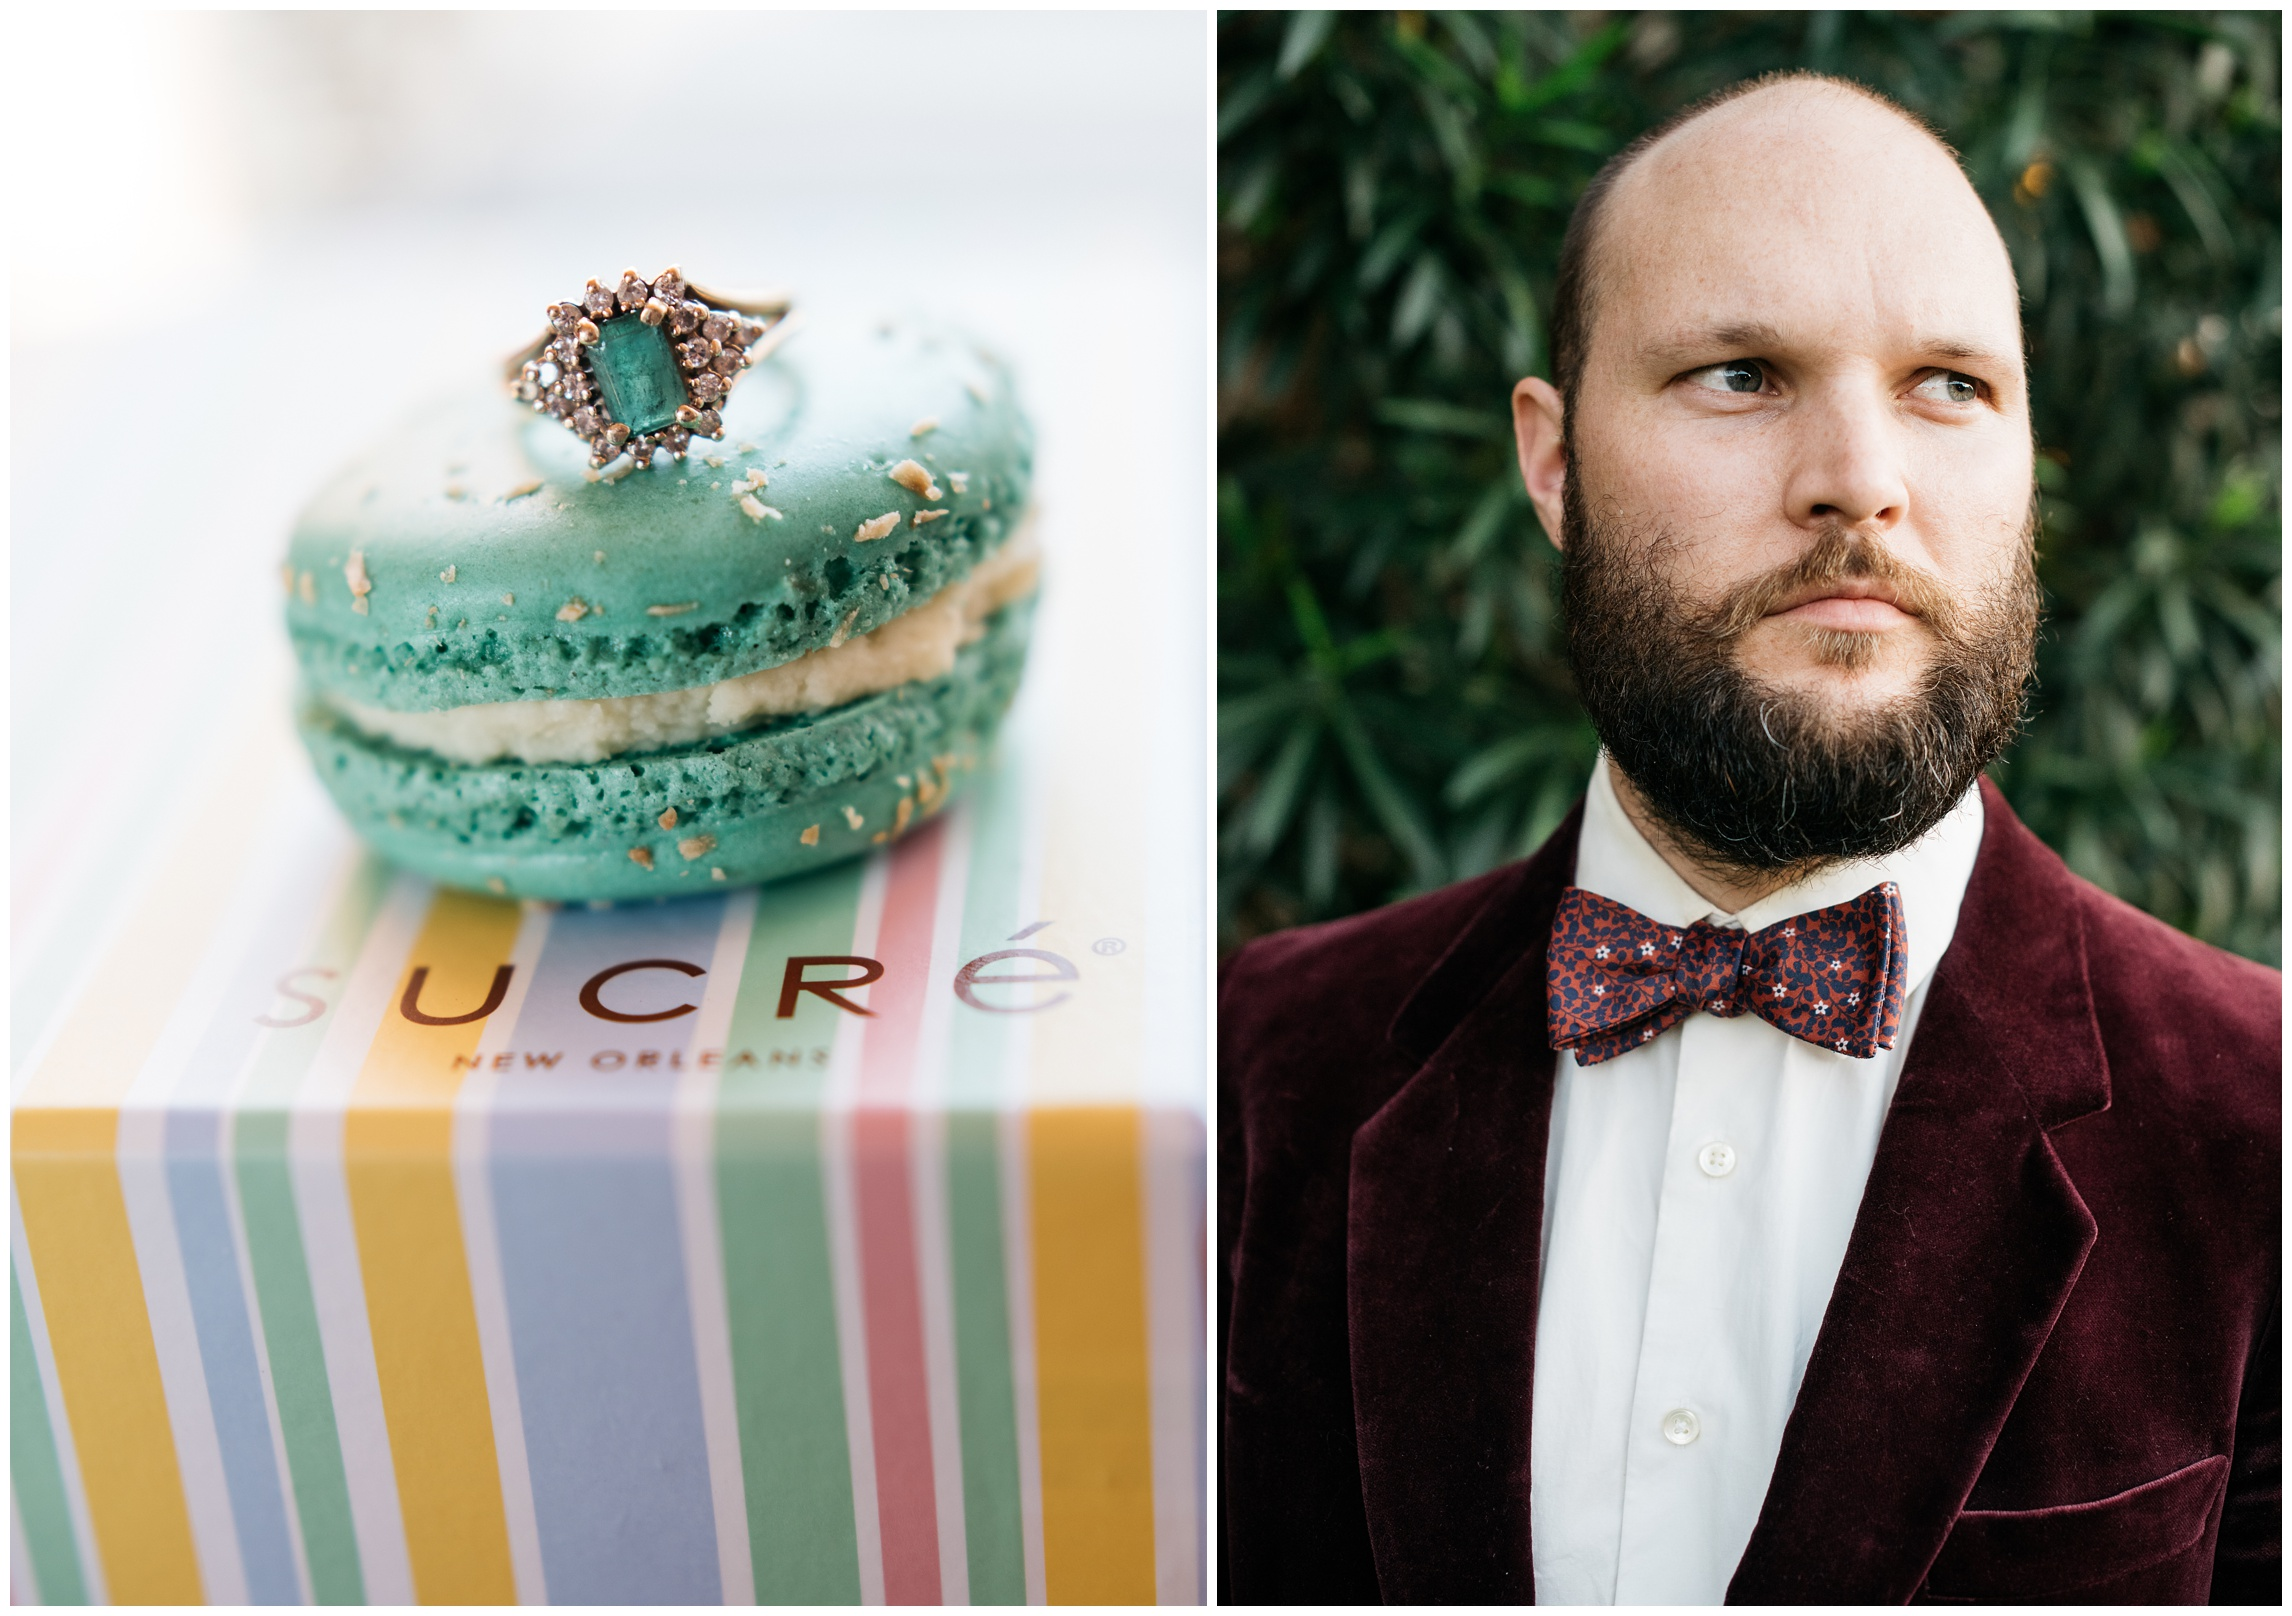 French macaroons by Sucre. Bow tie by Knotty Tie. Film product photography by Sonja Salzburg of Sonja K Photography.